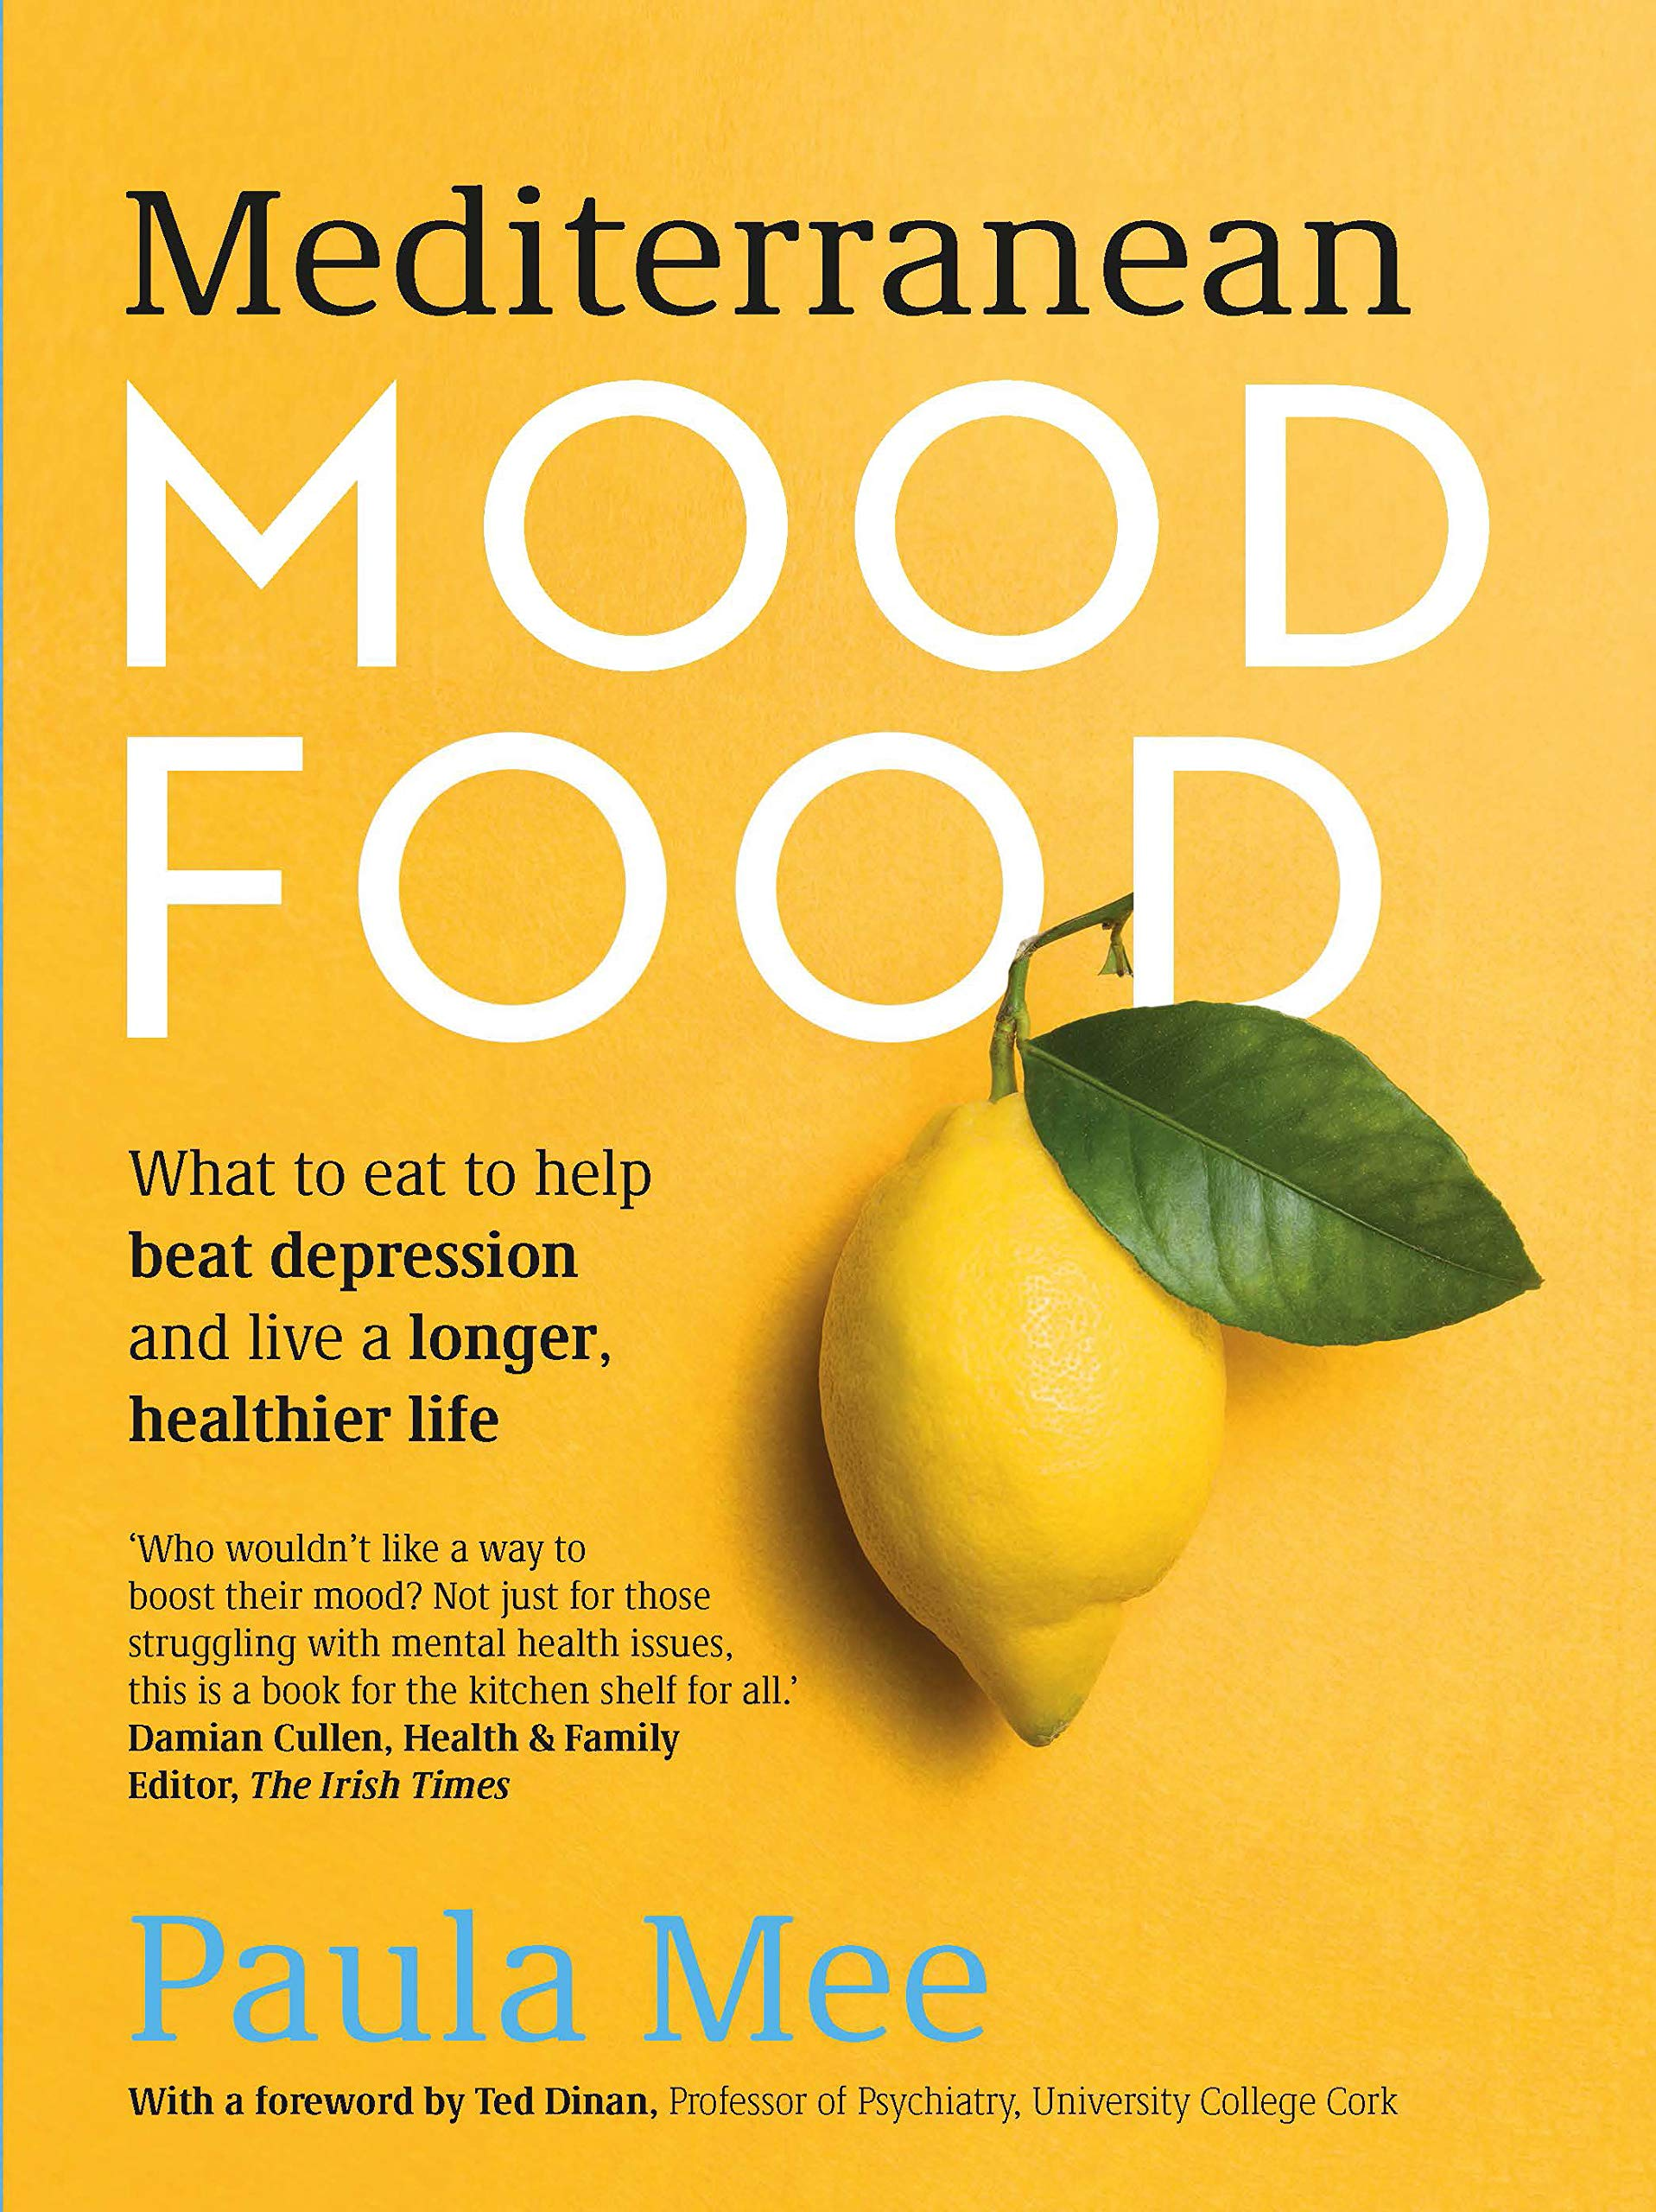 Mediterranean Mood Food: What to eat to help beat depression